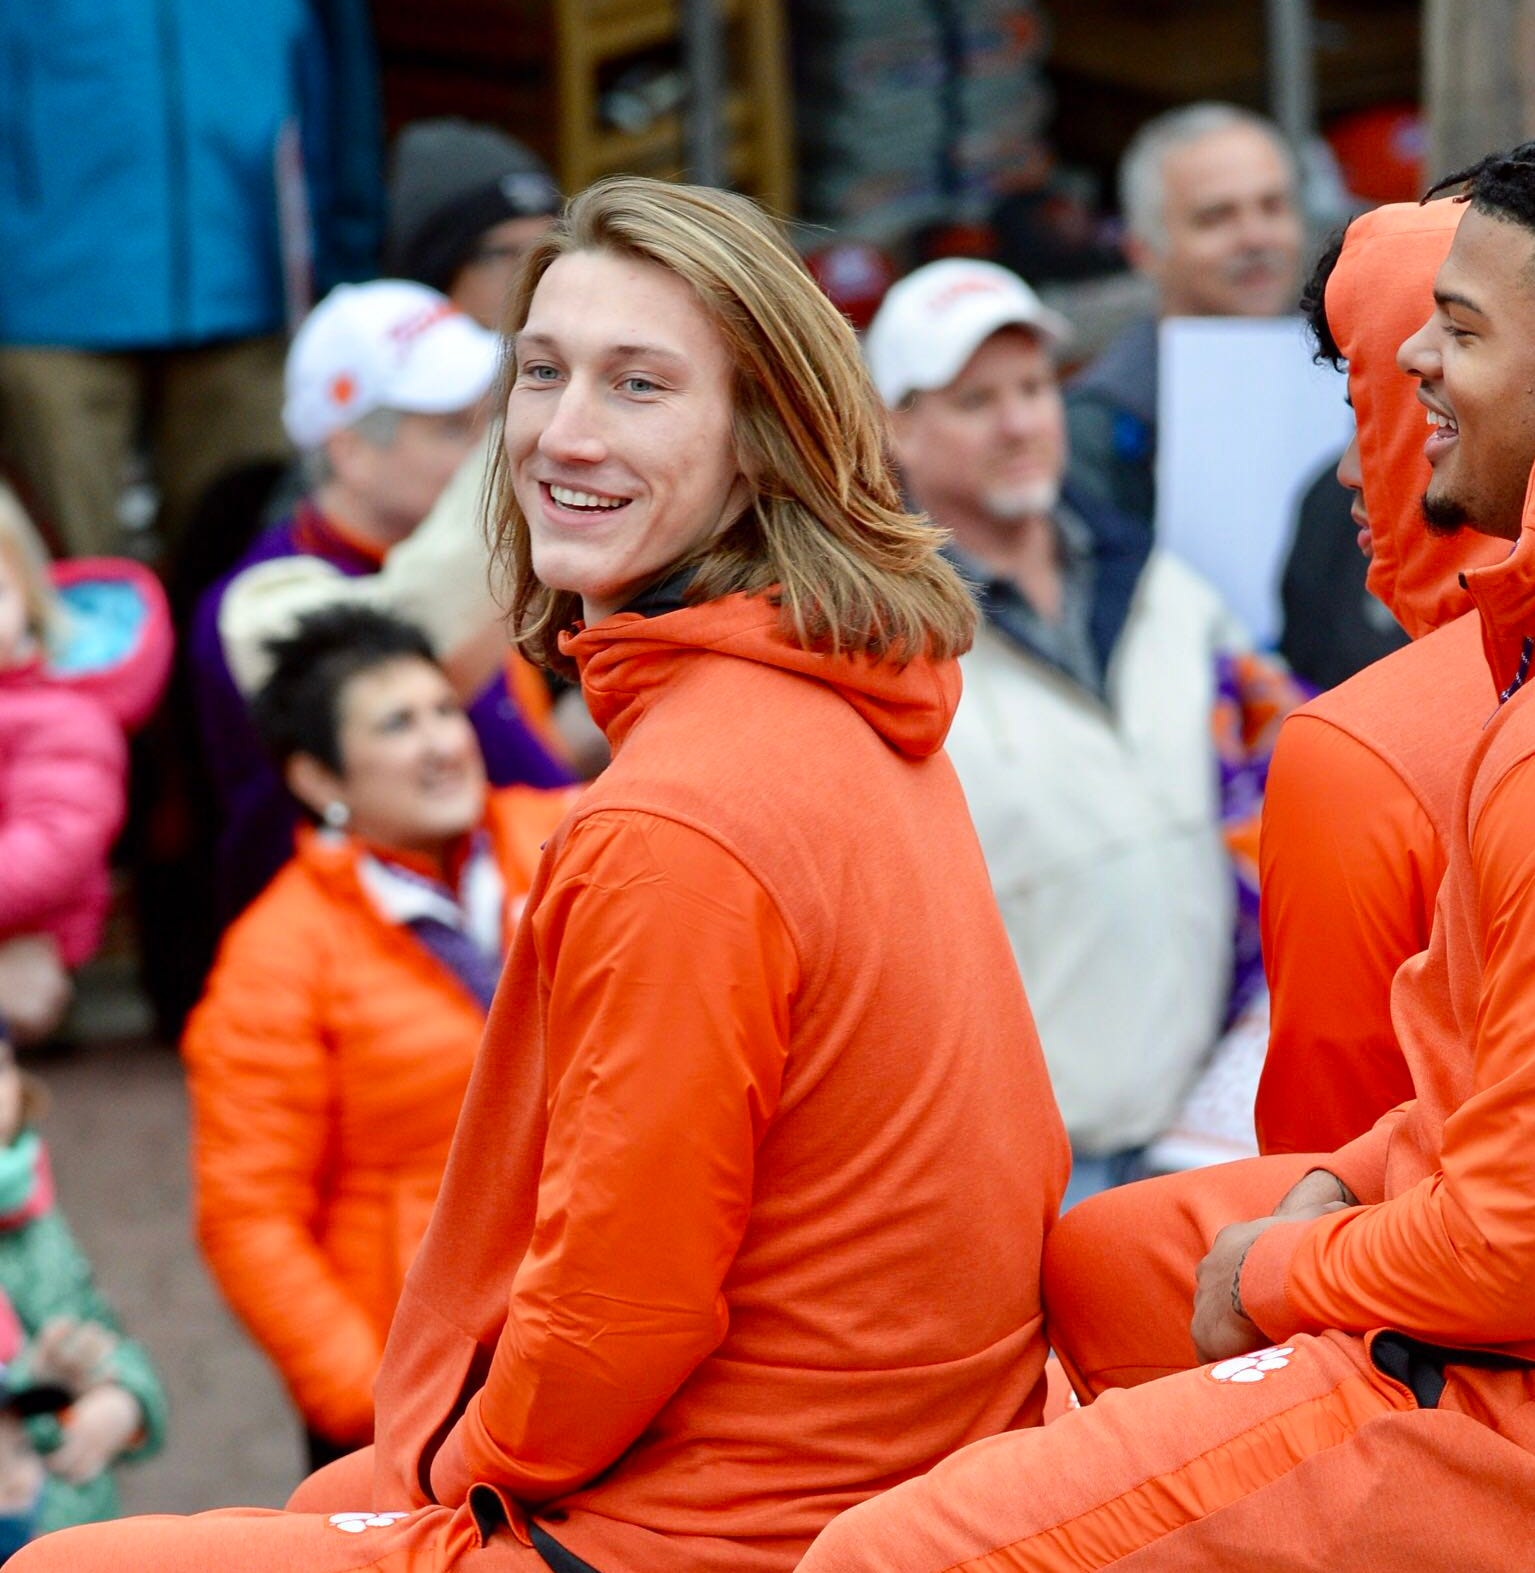 Clemson QB Trevor Lawrence furiously shoves opponent during intramural basketball game